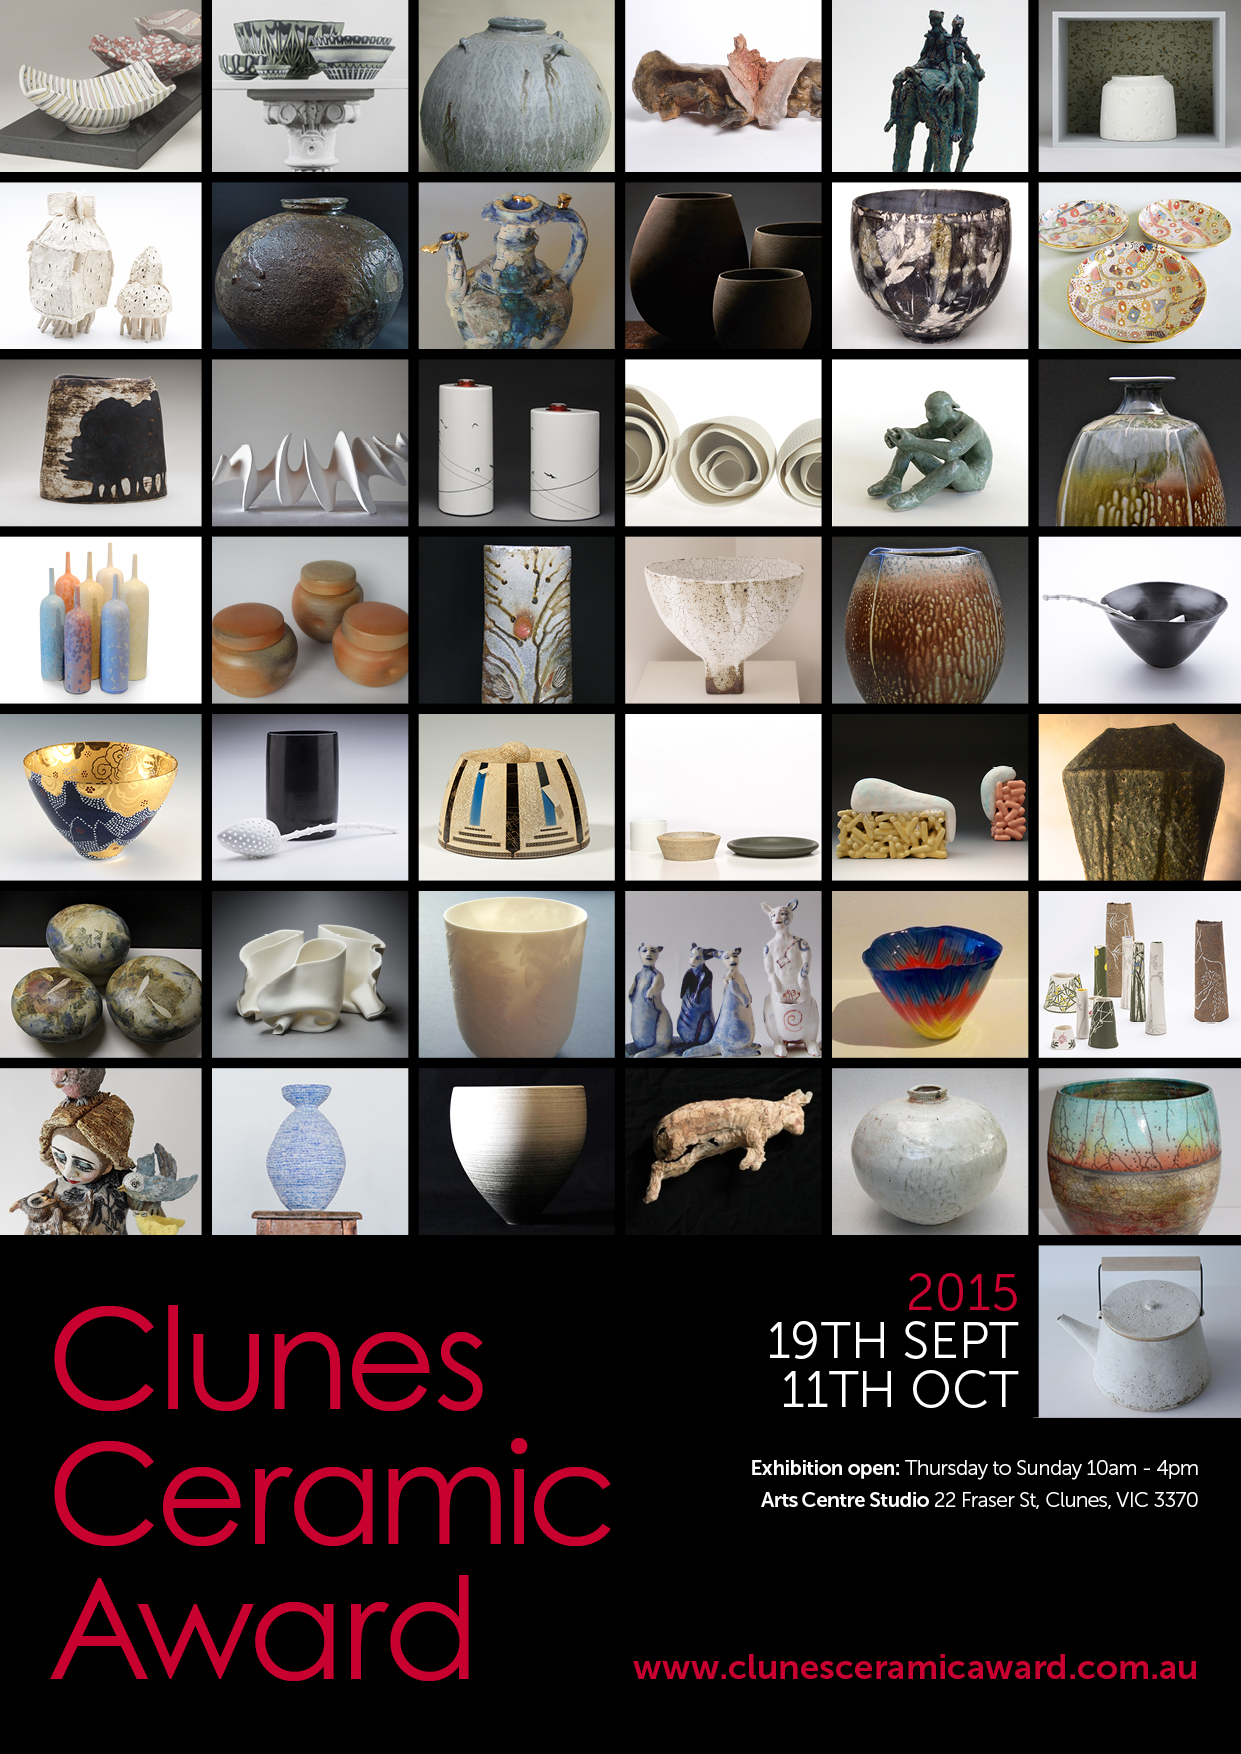 View the works of the 2015 Clunes Ceramic Award Finalists online